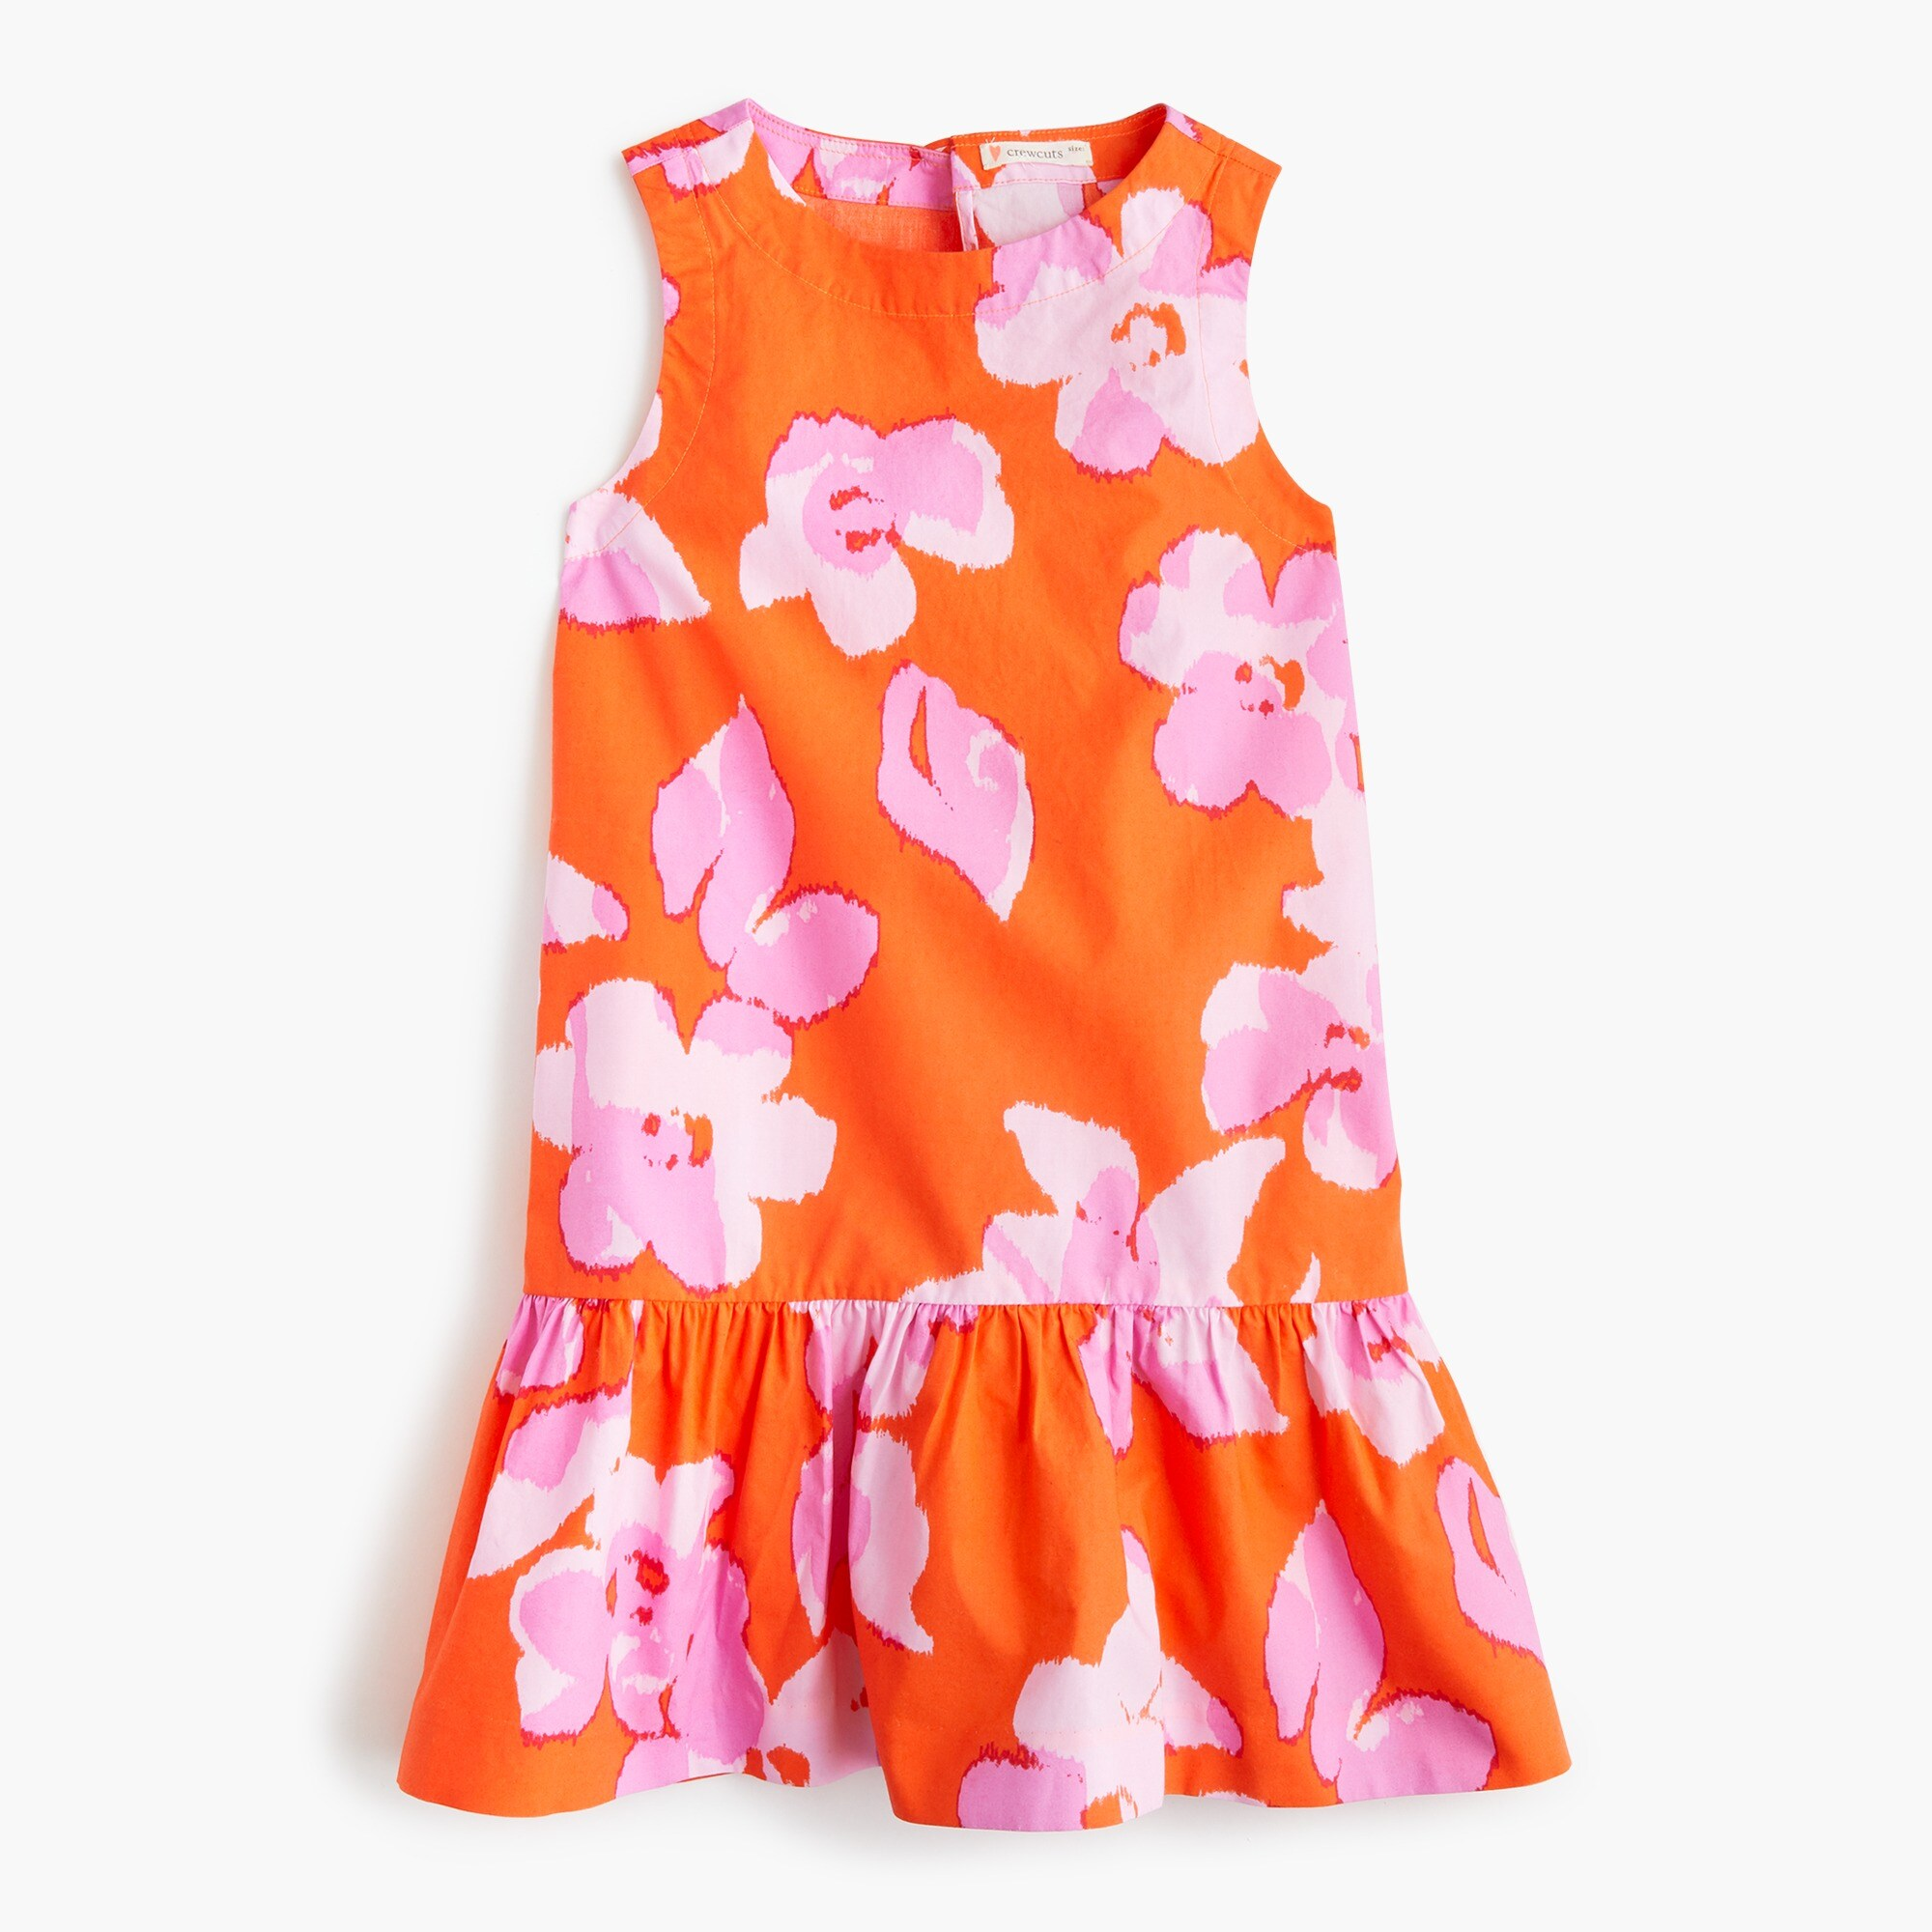 Girls' drop-waist dress in floral girl new arrivals c